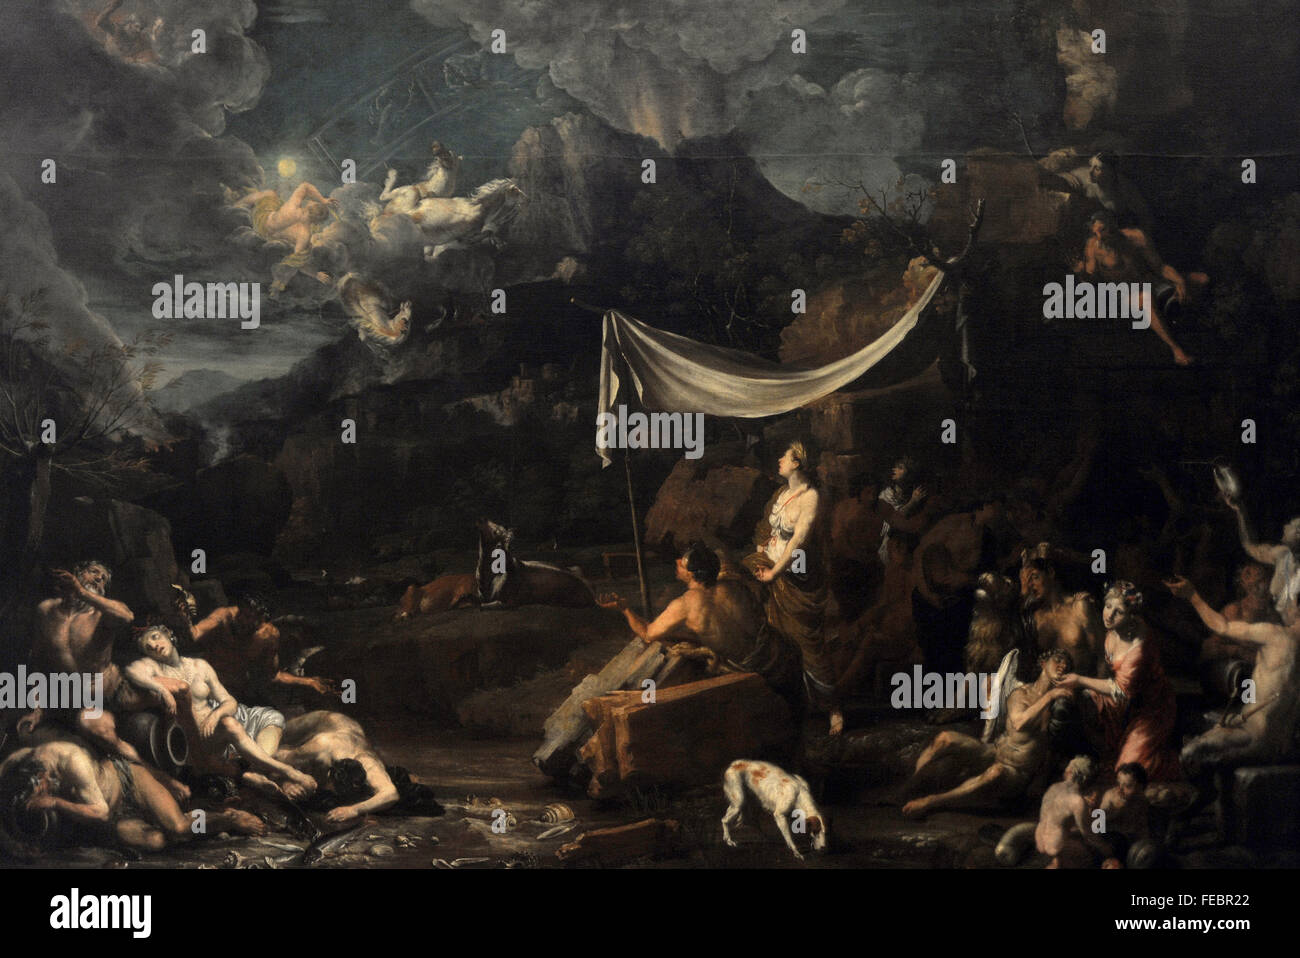 Johann Heiss (1640-1704). German painter. Phaethon's Fall, 1678. National Gallery. Prague. Czech Republic. Stock Photo